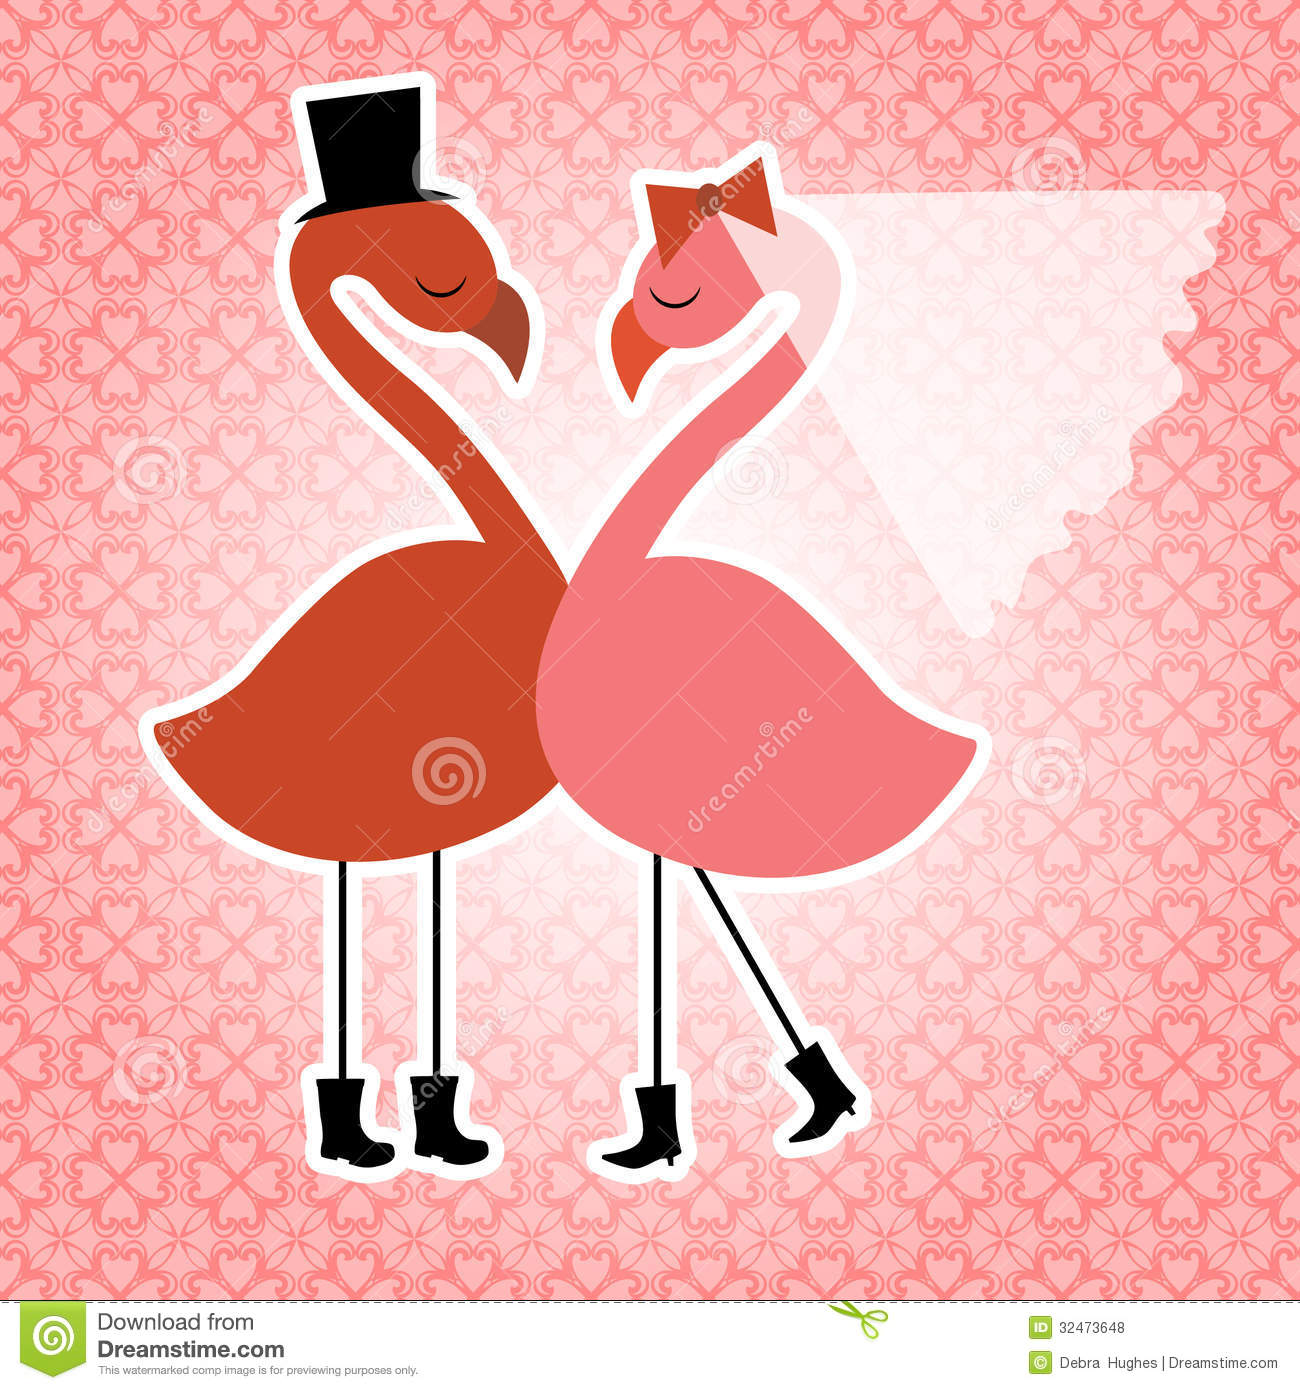 Flamingo Birds Wedding Invitation Stock Vector - Illustration of ...